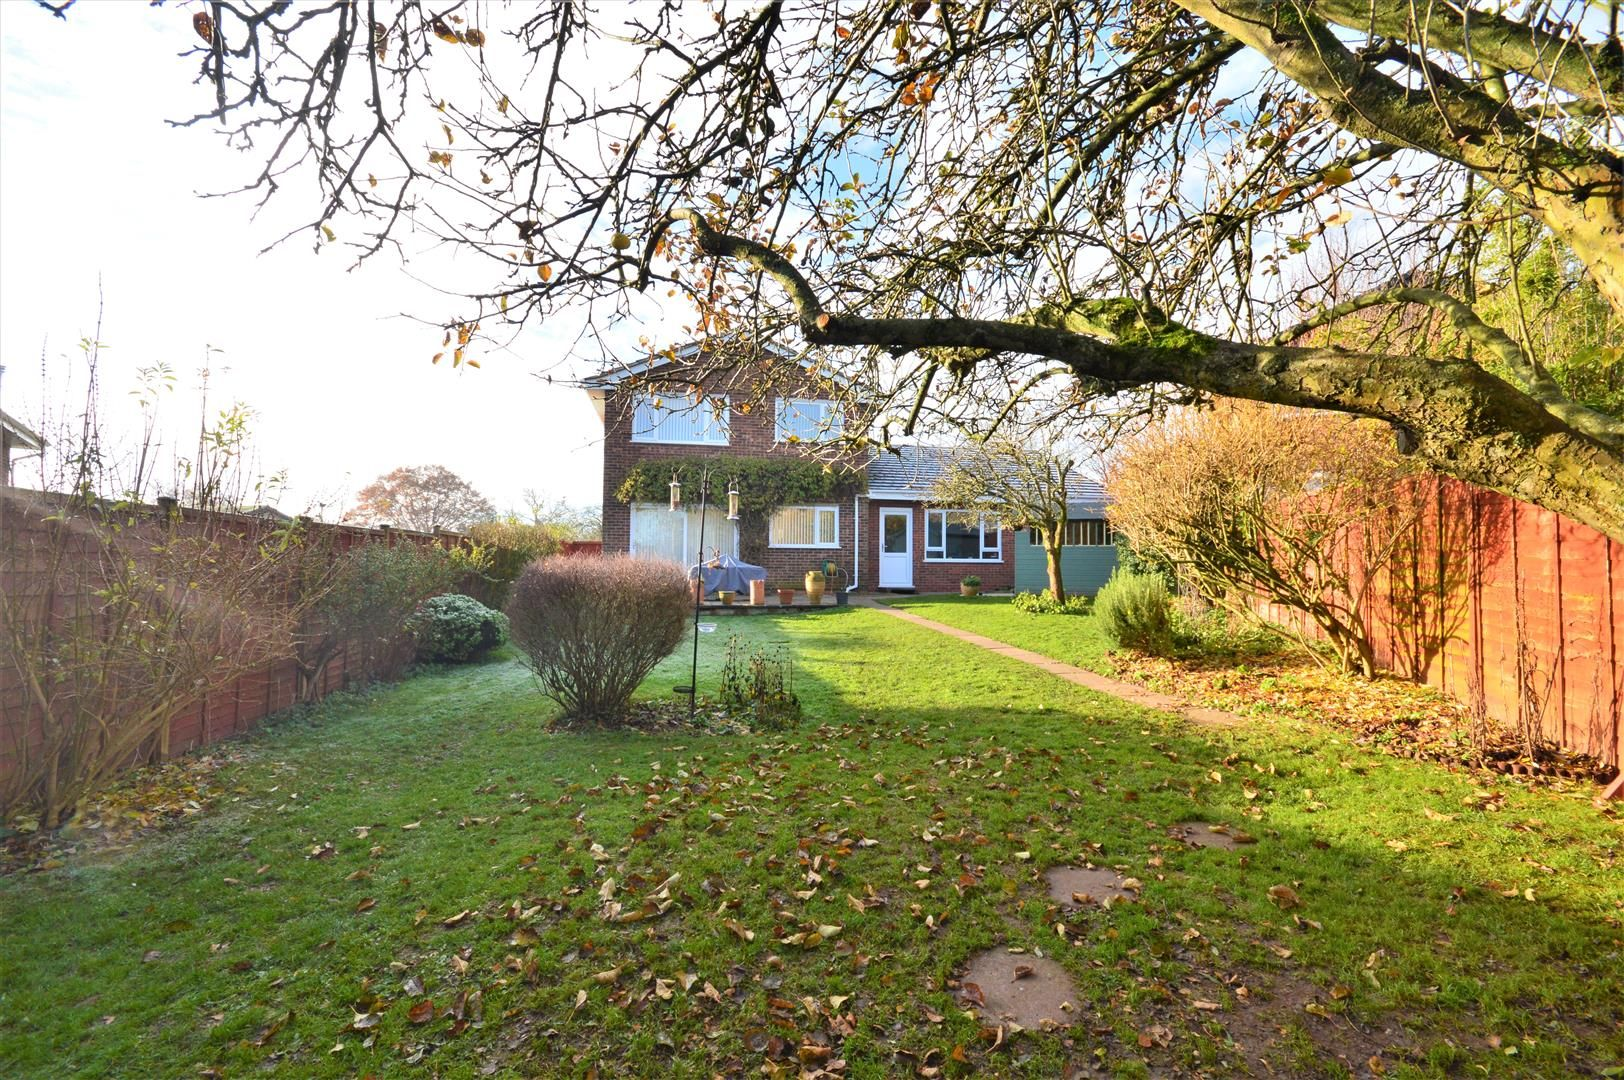 3 bed detached for sale in Kings Caple  - Property Image 3